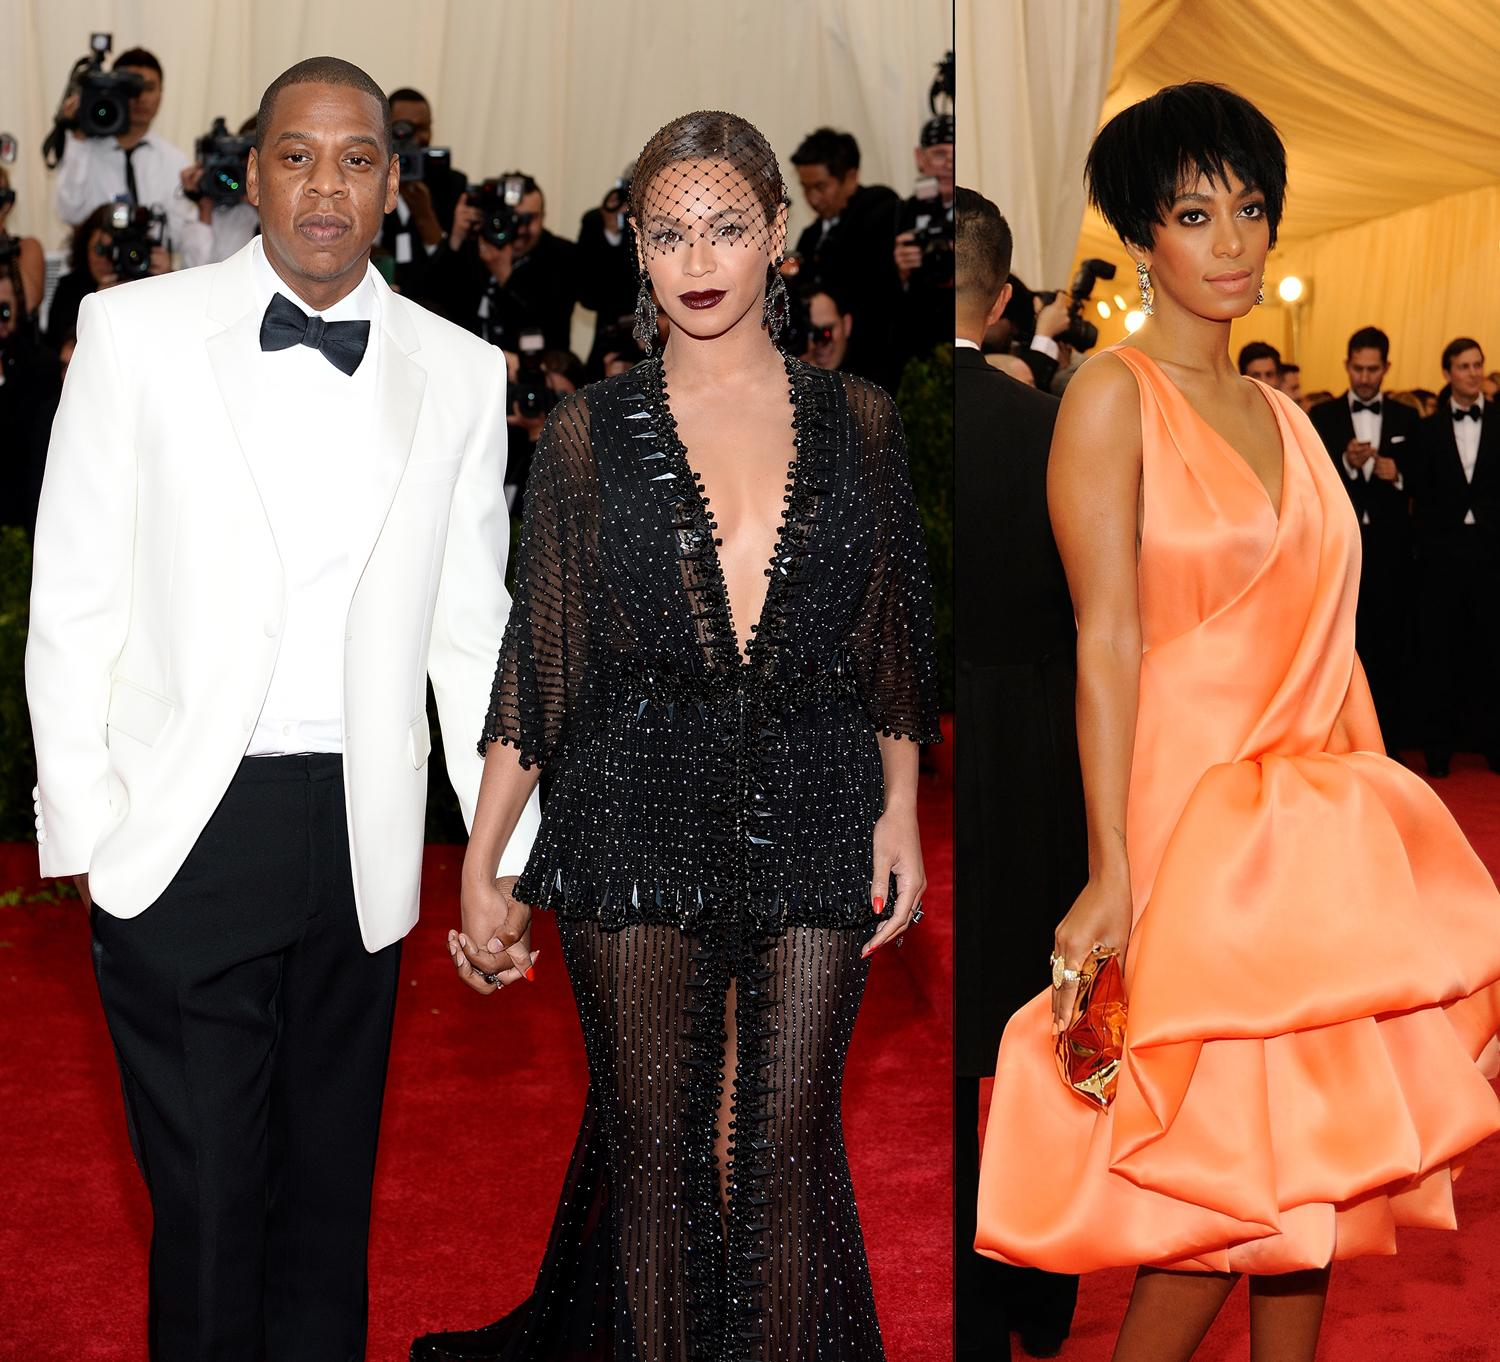 pics Beyoncé Alludes to the Elevator Fight in New SongRemix